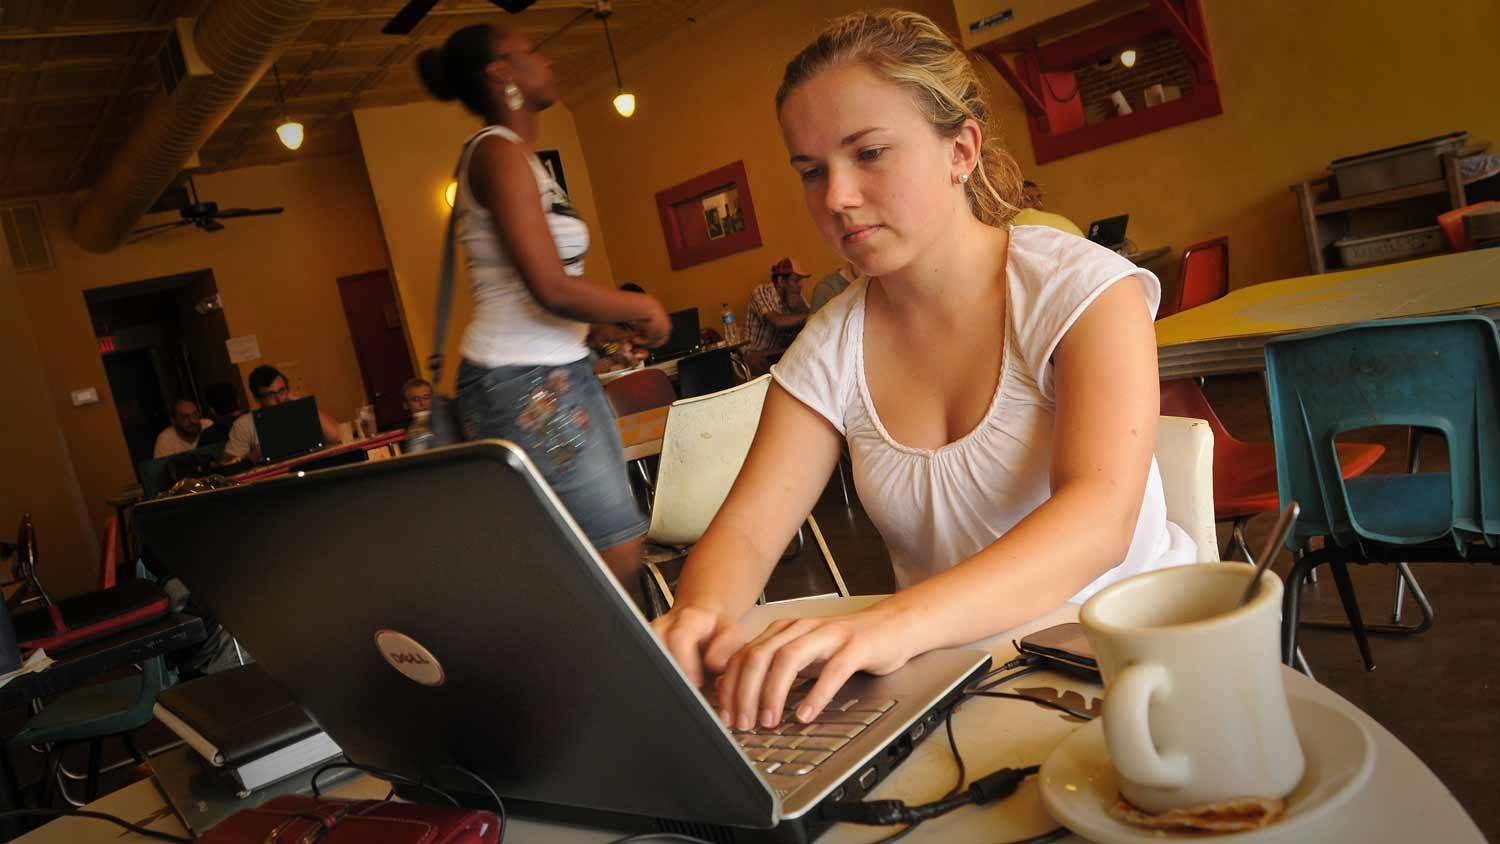 Woman on a laptop while at local coffeshop.